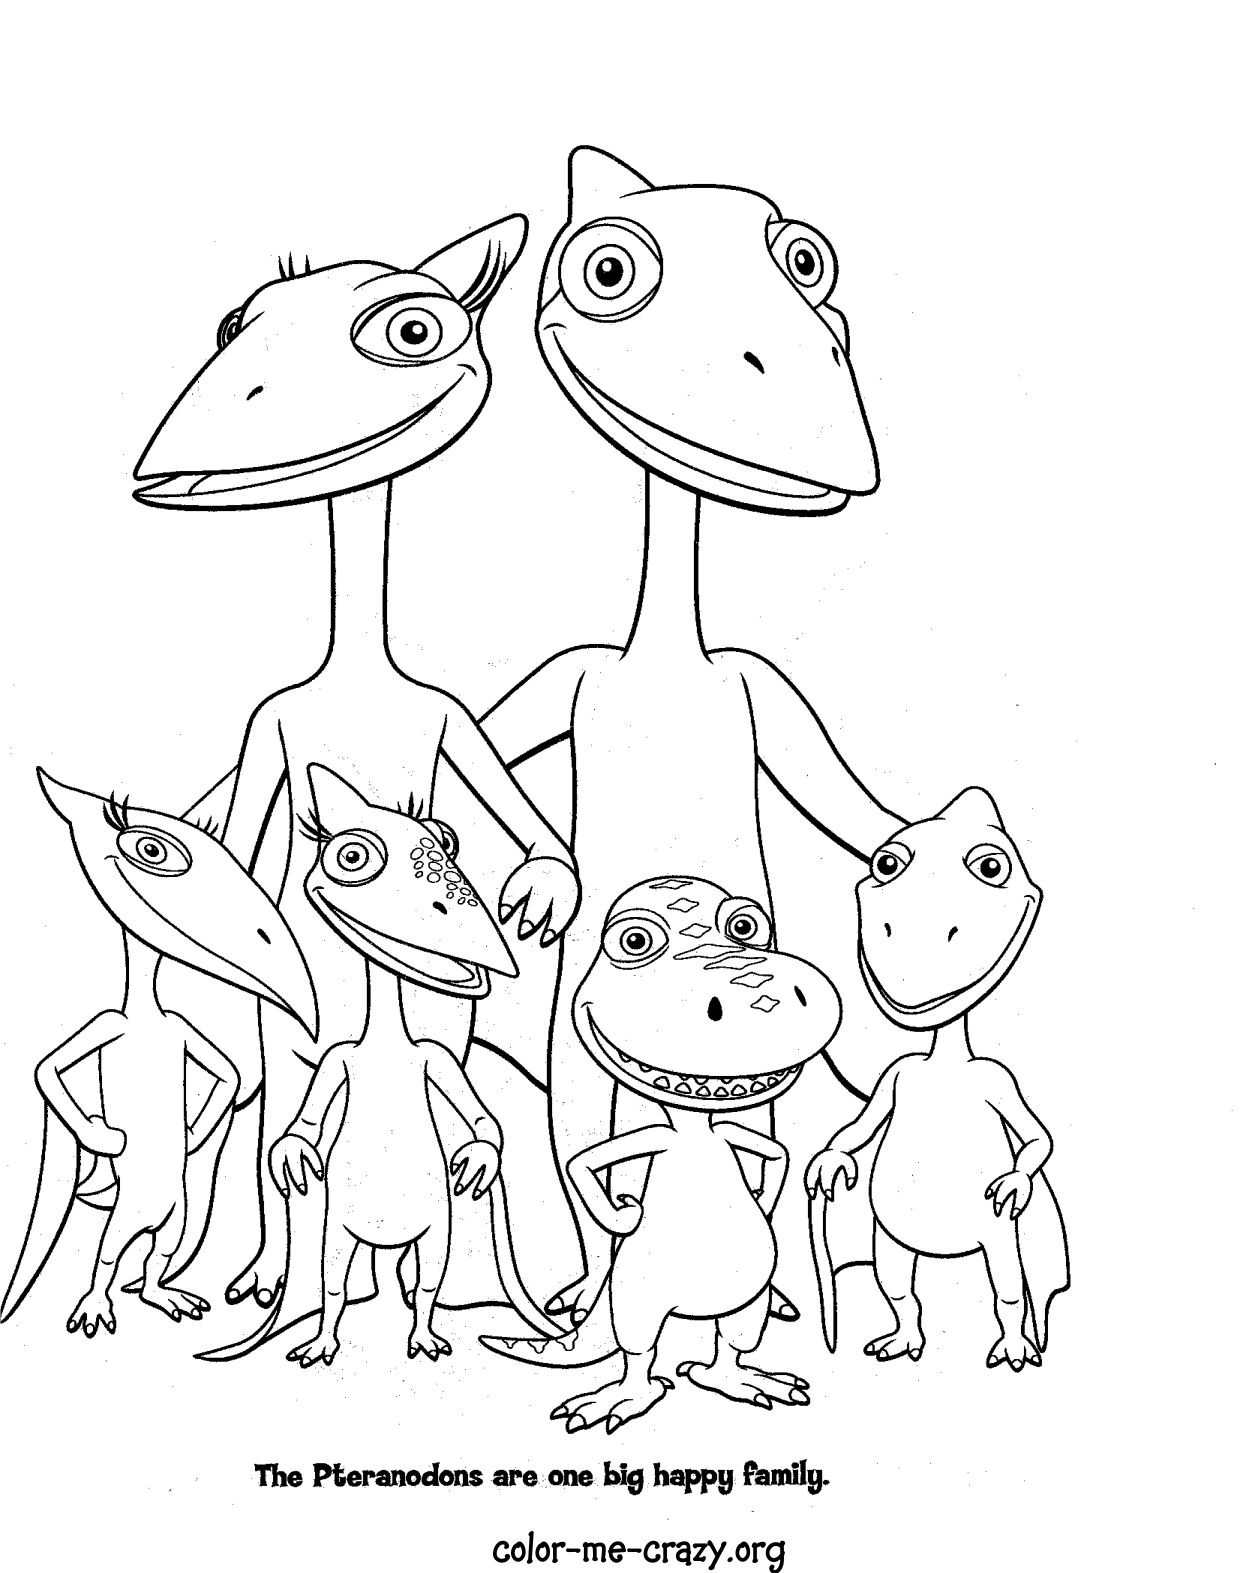 dino coloring pages the good dinosaur coloring page dinosaur coloring pages dino coloring pages